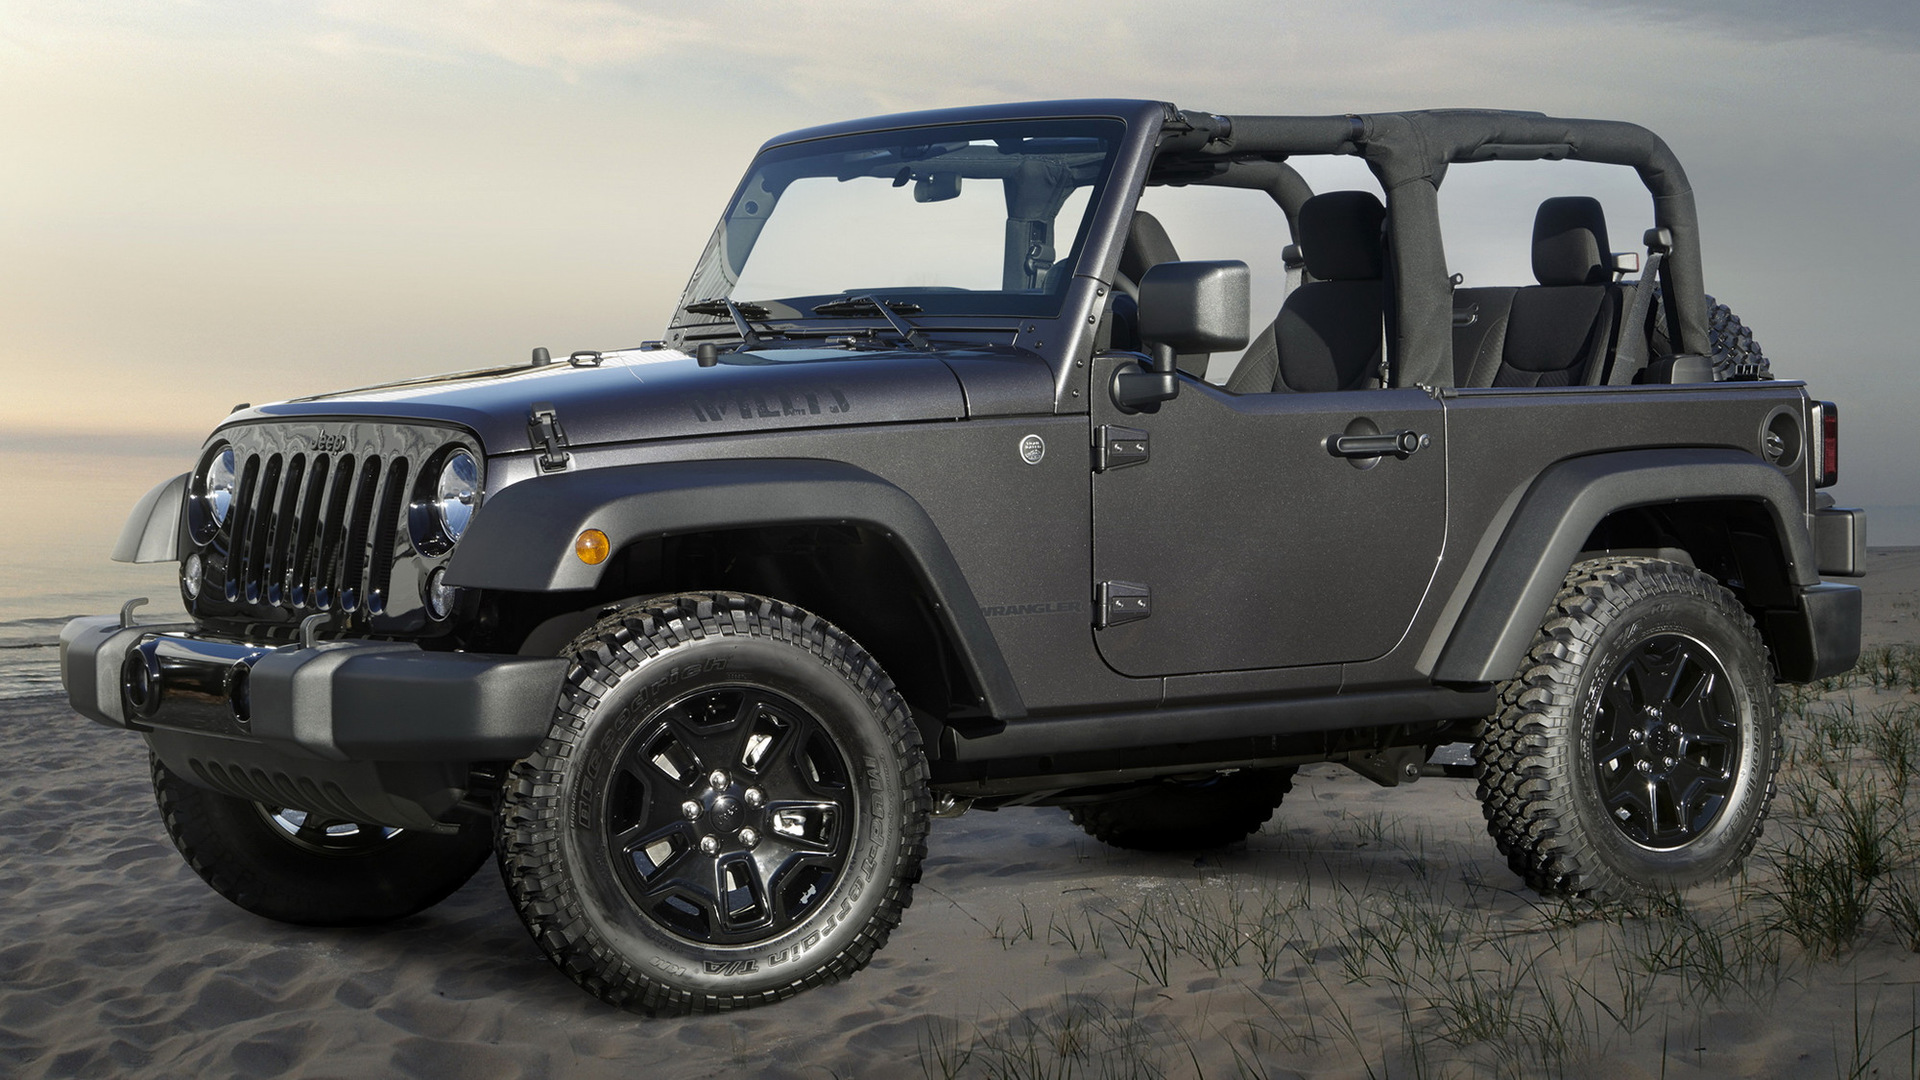 Willys Jeep Wrangler